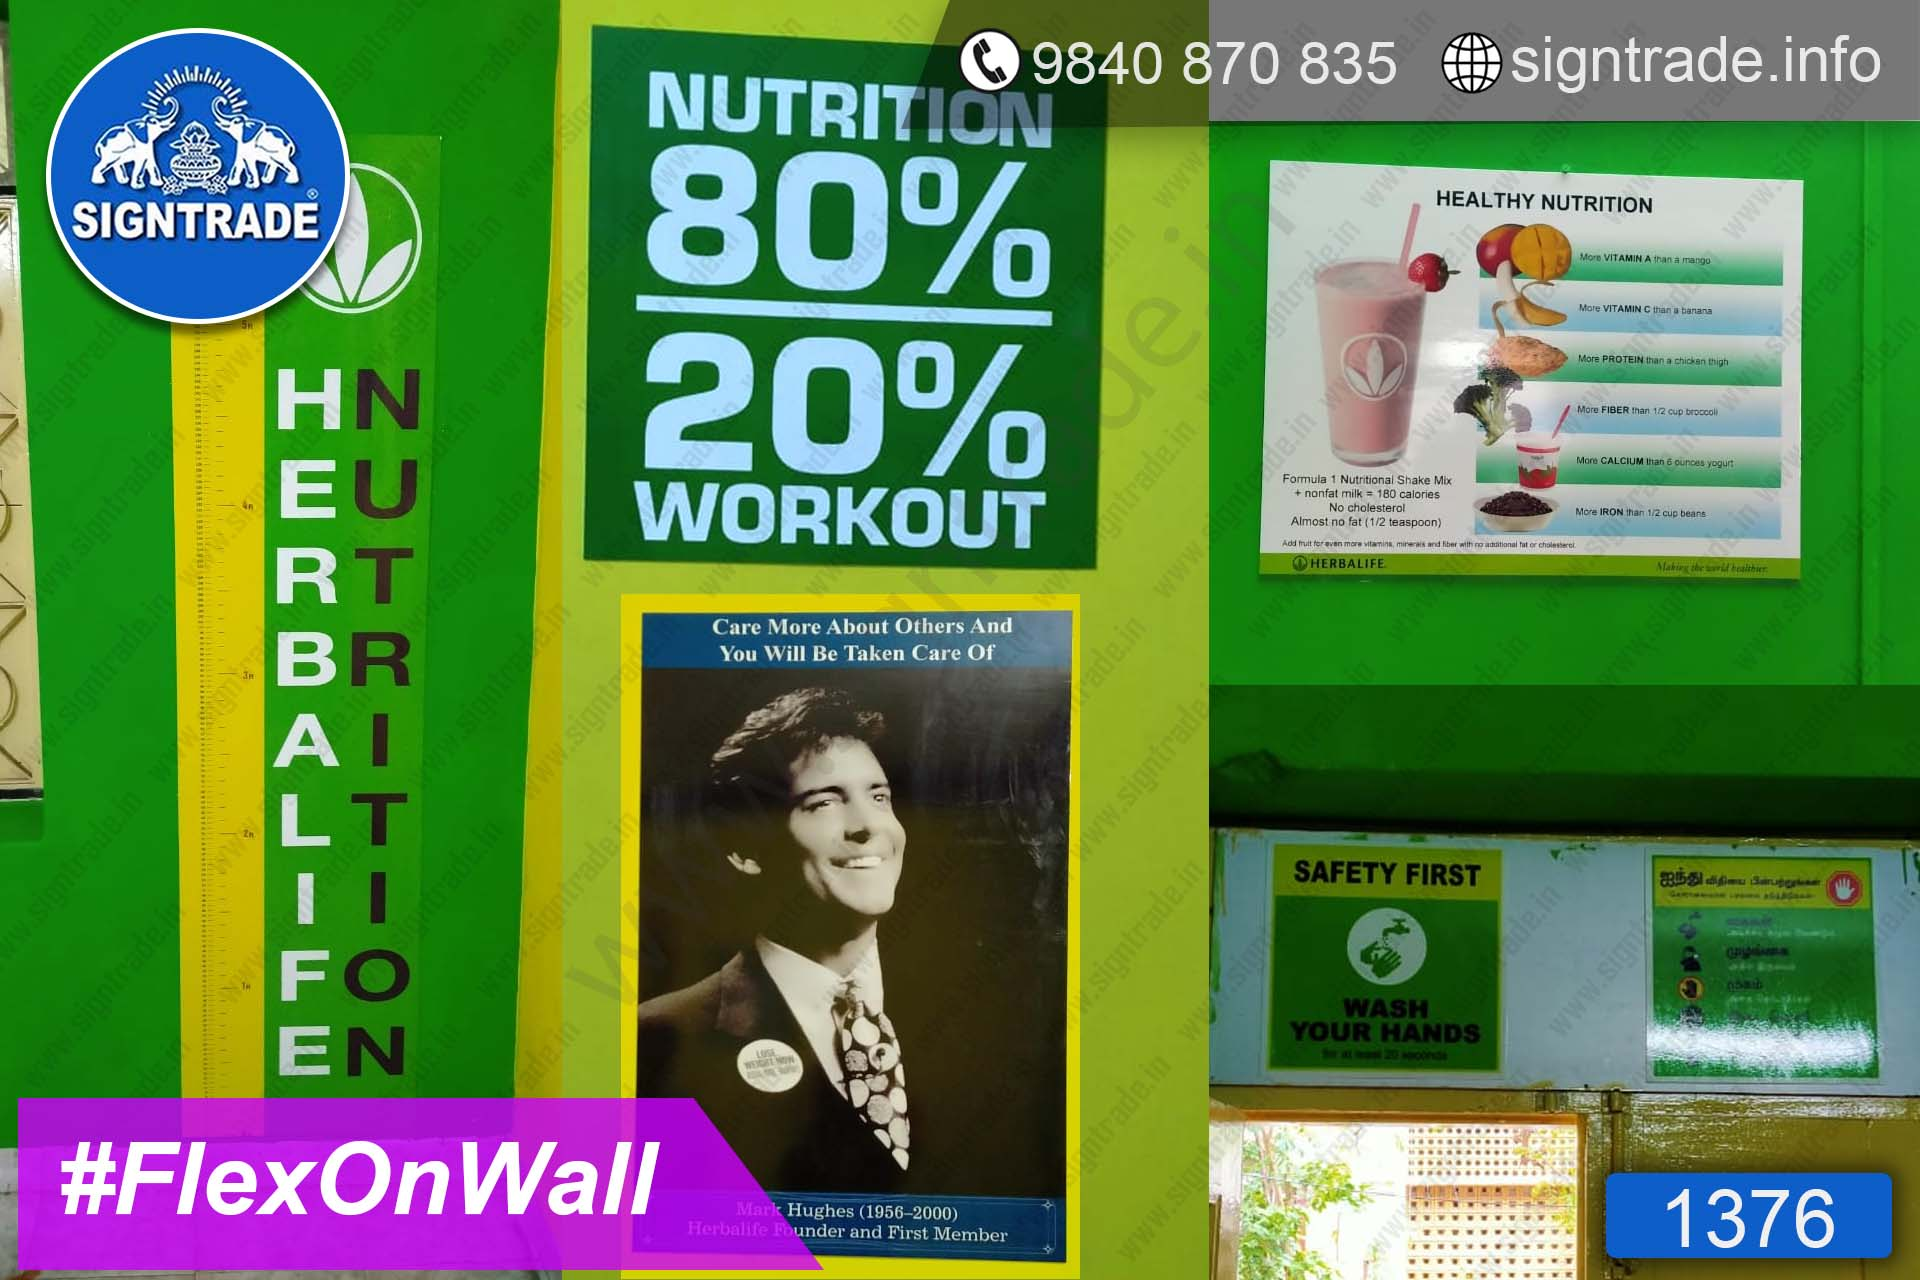 Physiotherapy Clinic - Chennai - SIGNTRADE - Wall Graphics - Digital Printing Services in Chennai